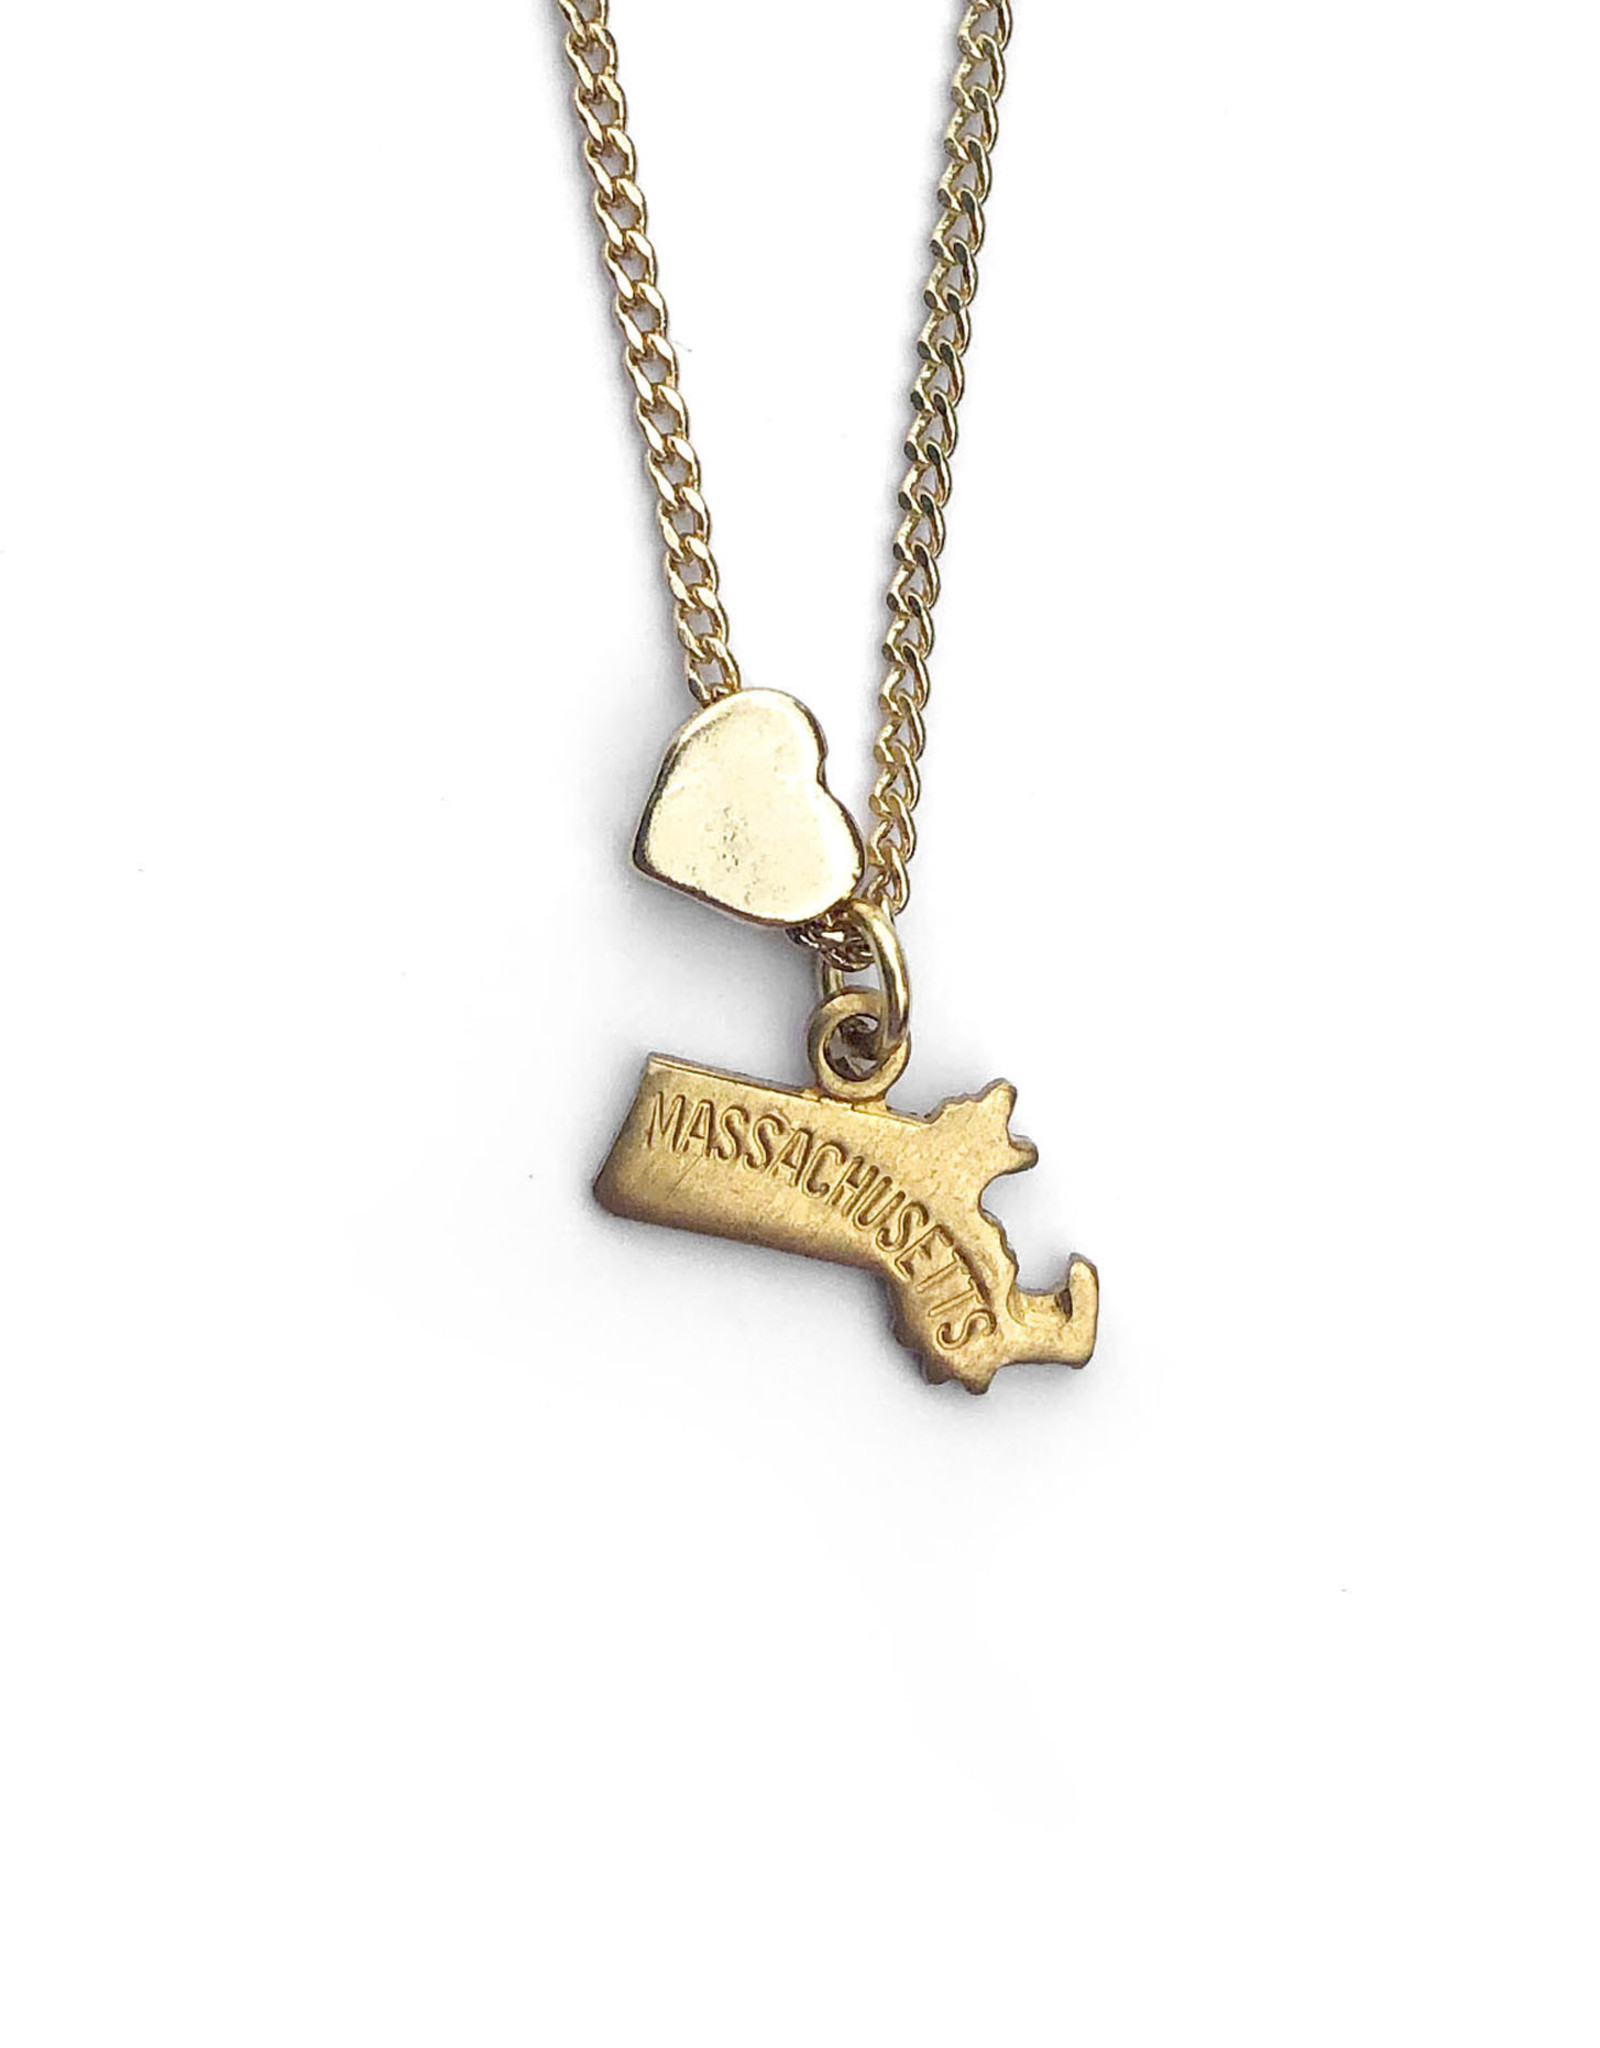 Massachusetts Heart Charm Necklace